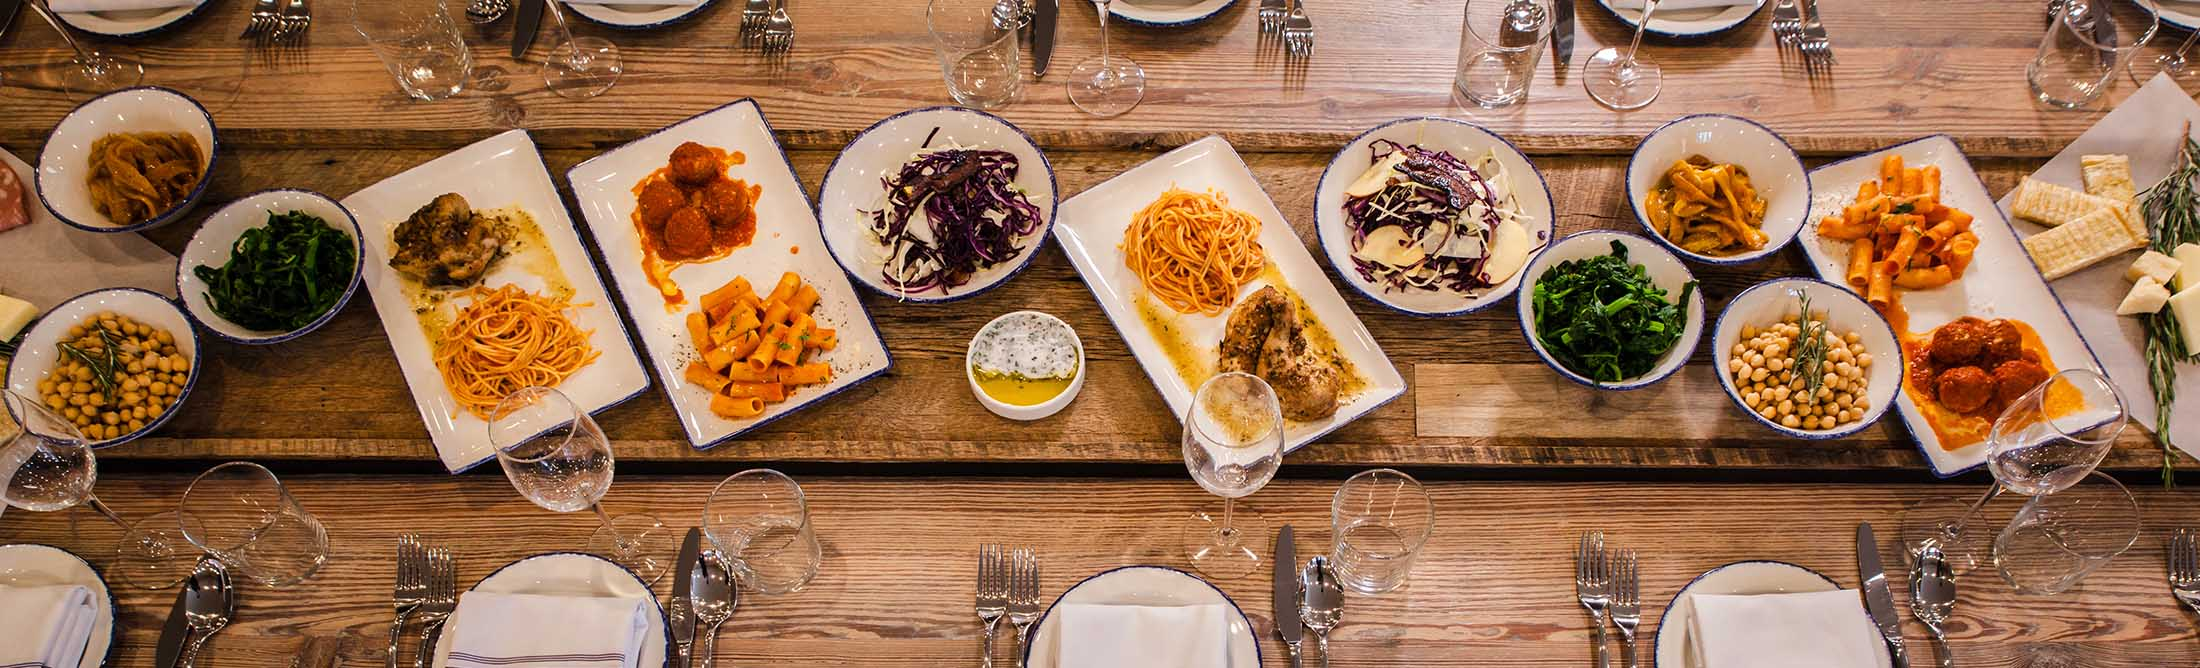 Pasta Is the Latest Entry in the Fast-Casual Restaurant Revolution ...